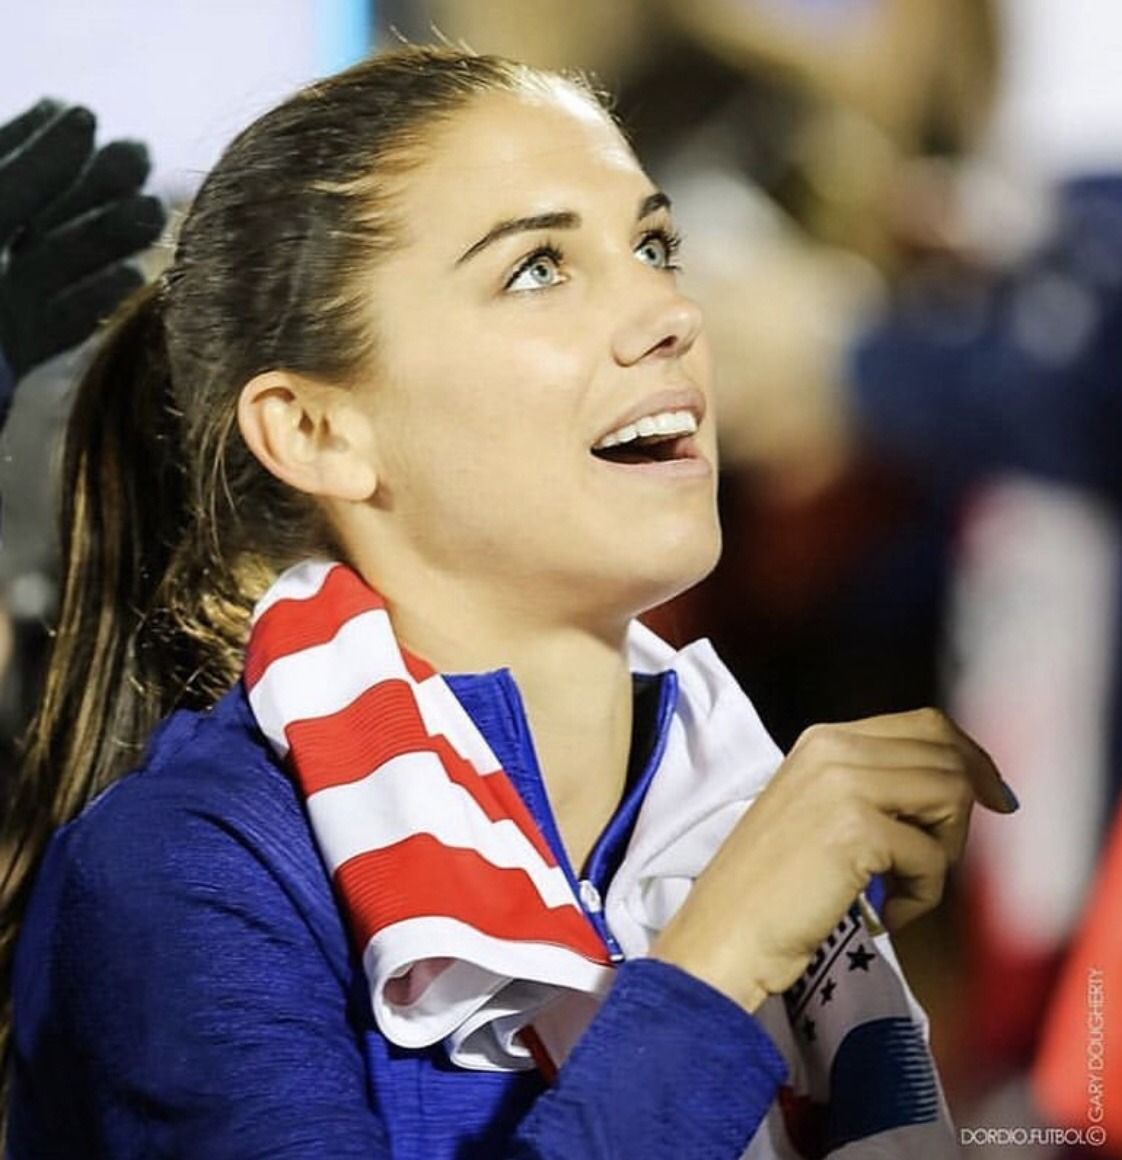 I Love Naps But I Stay Woke Uswnt Soccer Good Soccer Players Fifa Women S World Cup